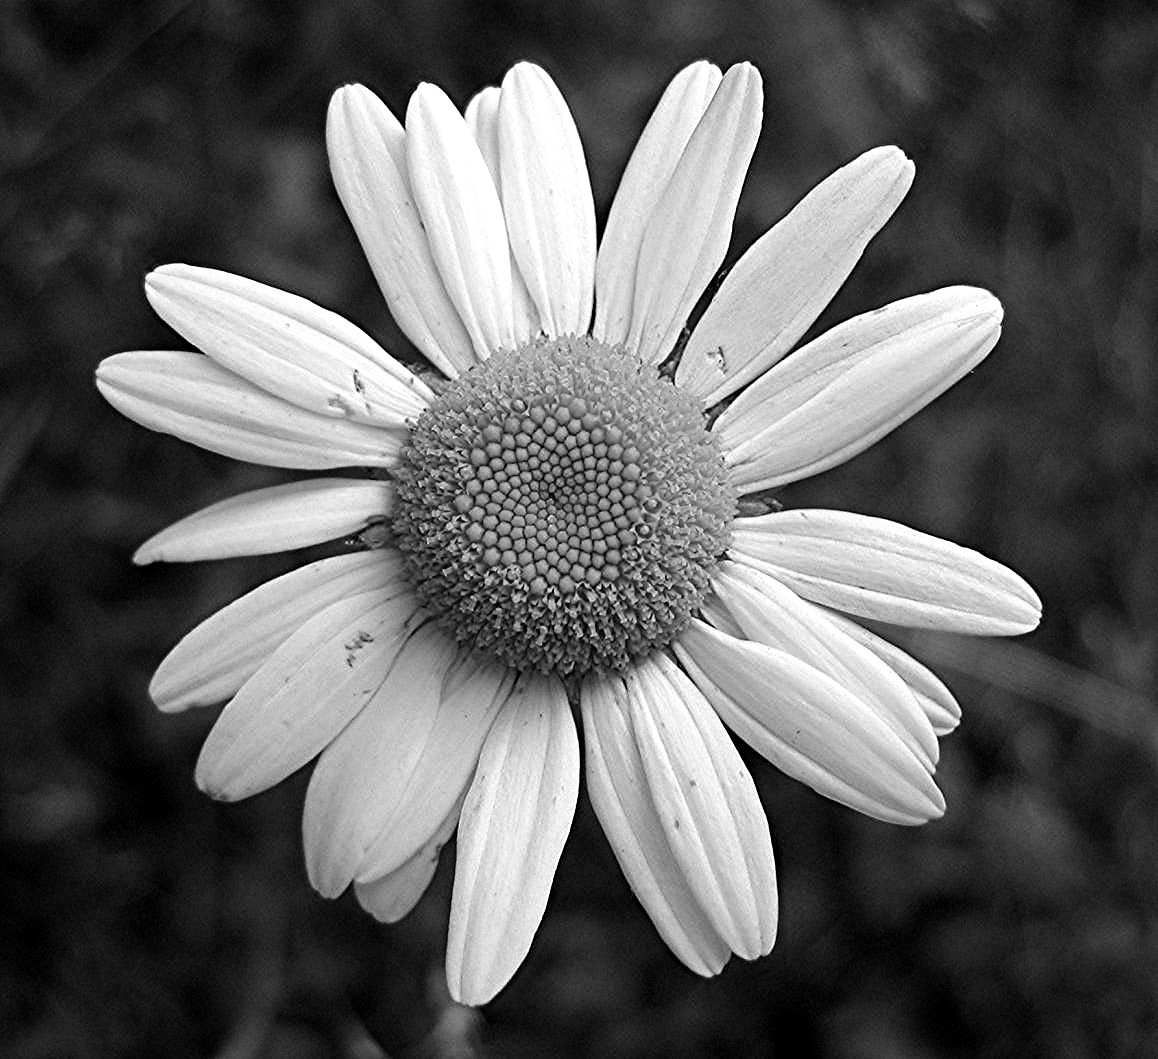 Black And White Flowers Wallpapers Hd: Black And White Daisy Wallpaper